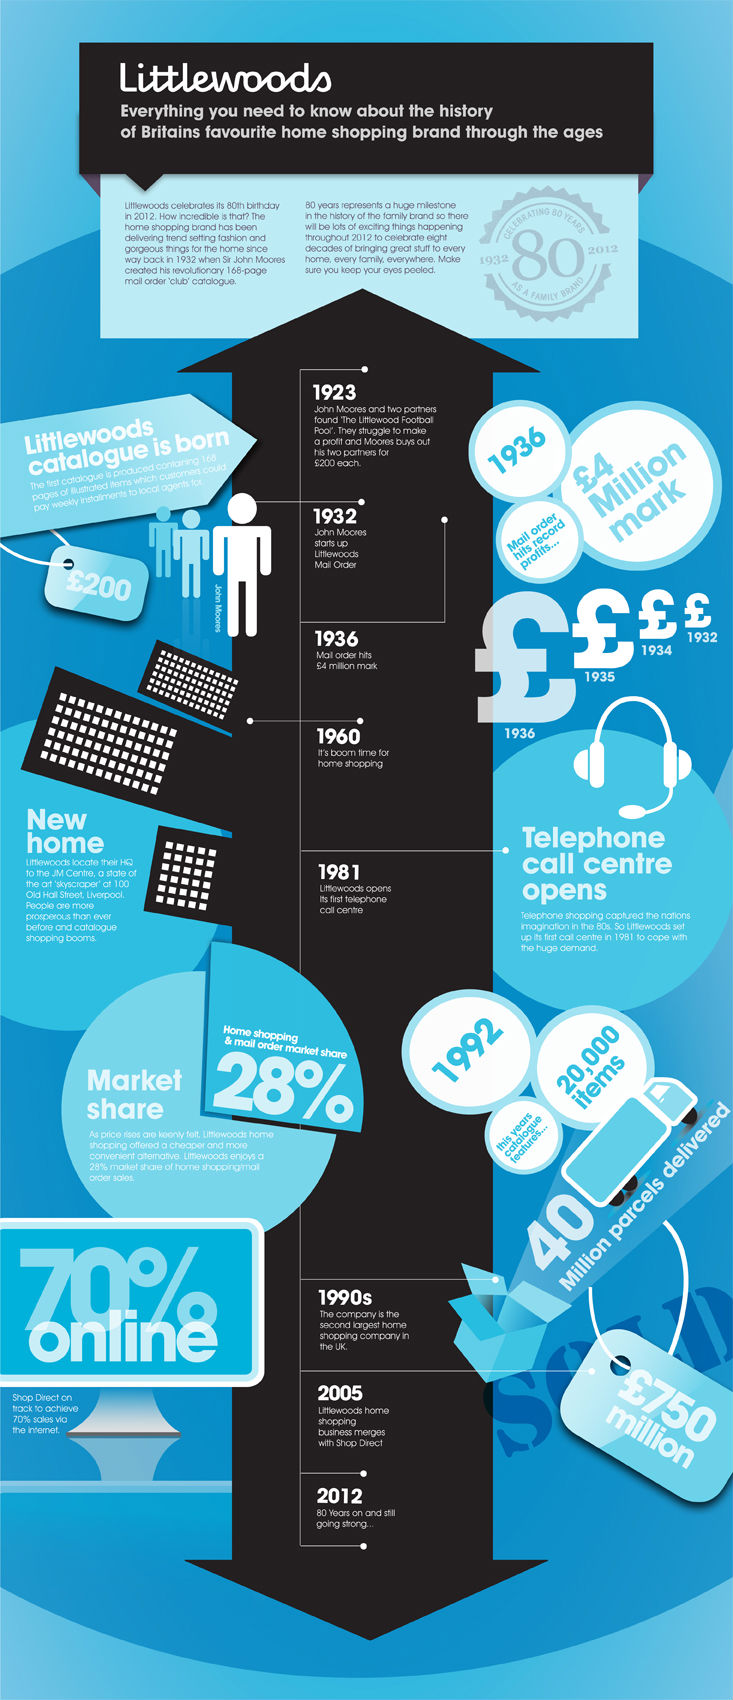 Littlewoods Through The Ages (Infographic)